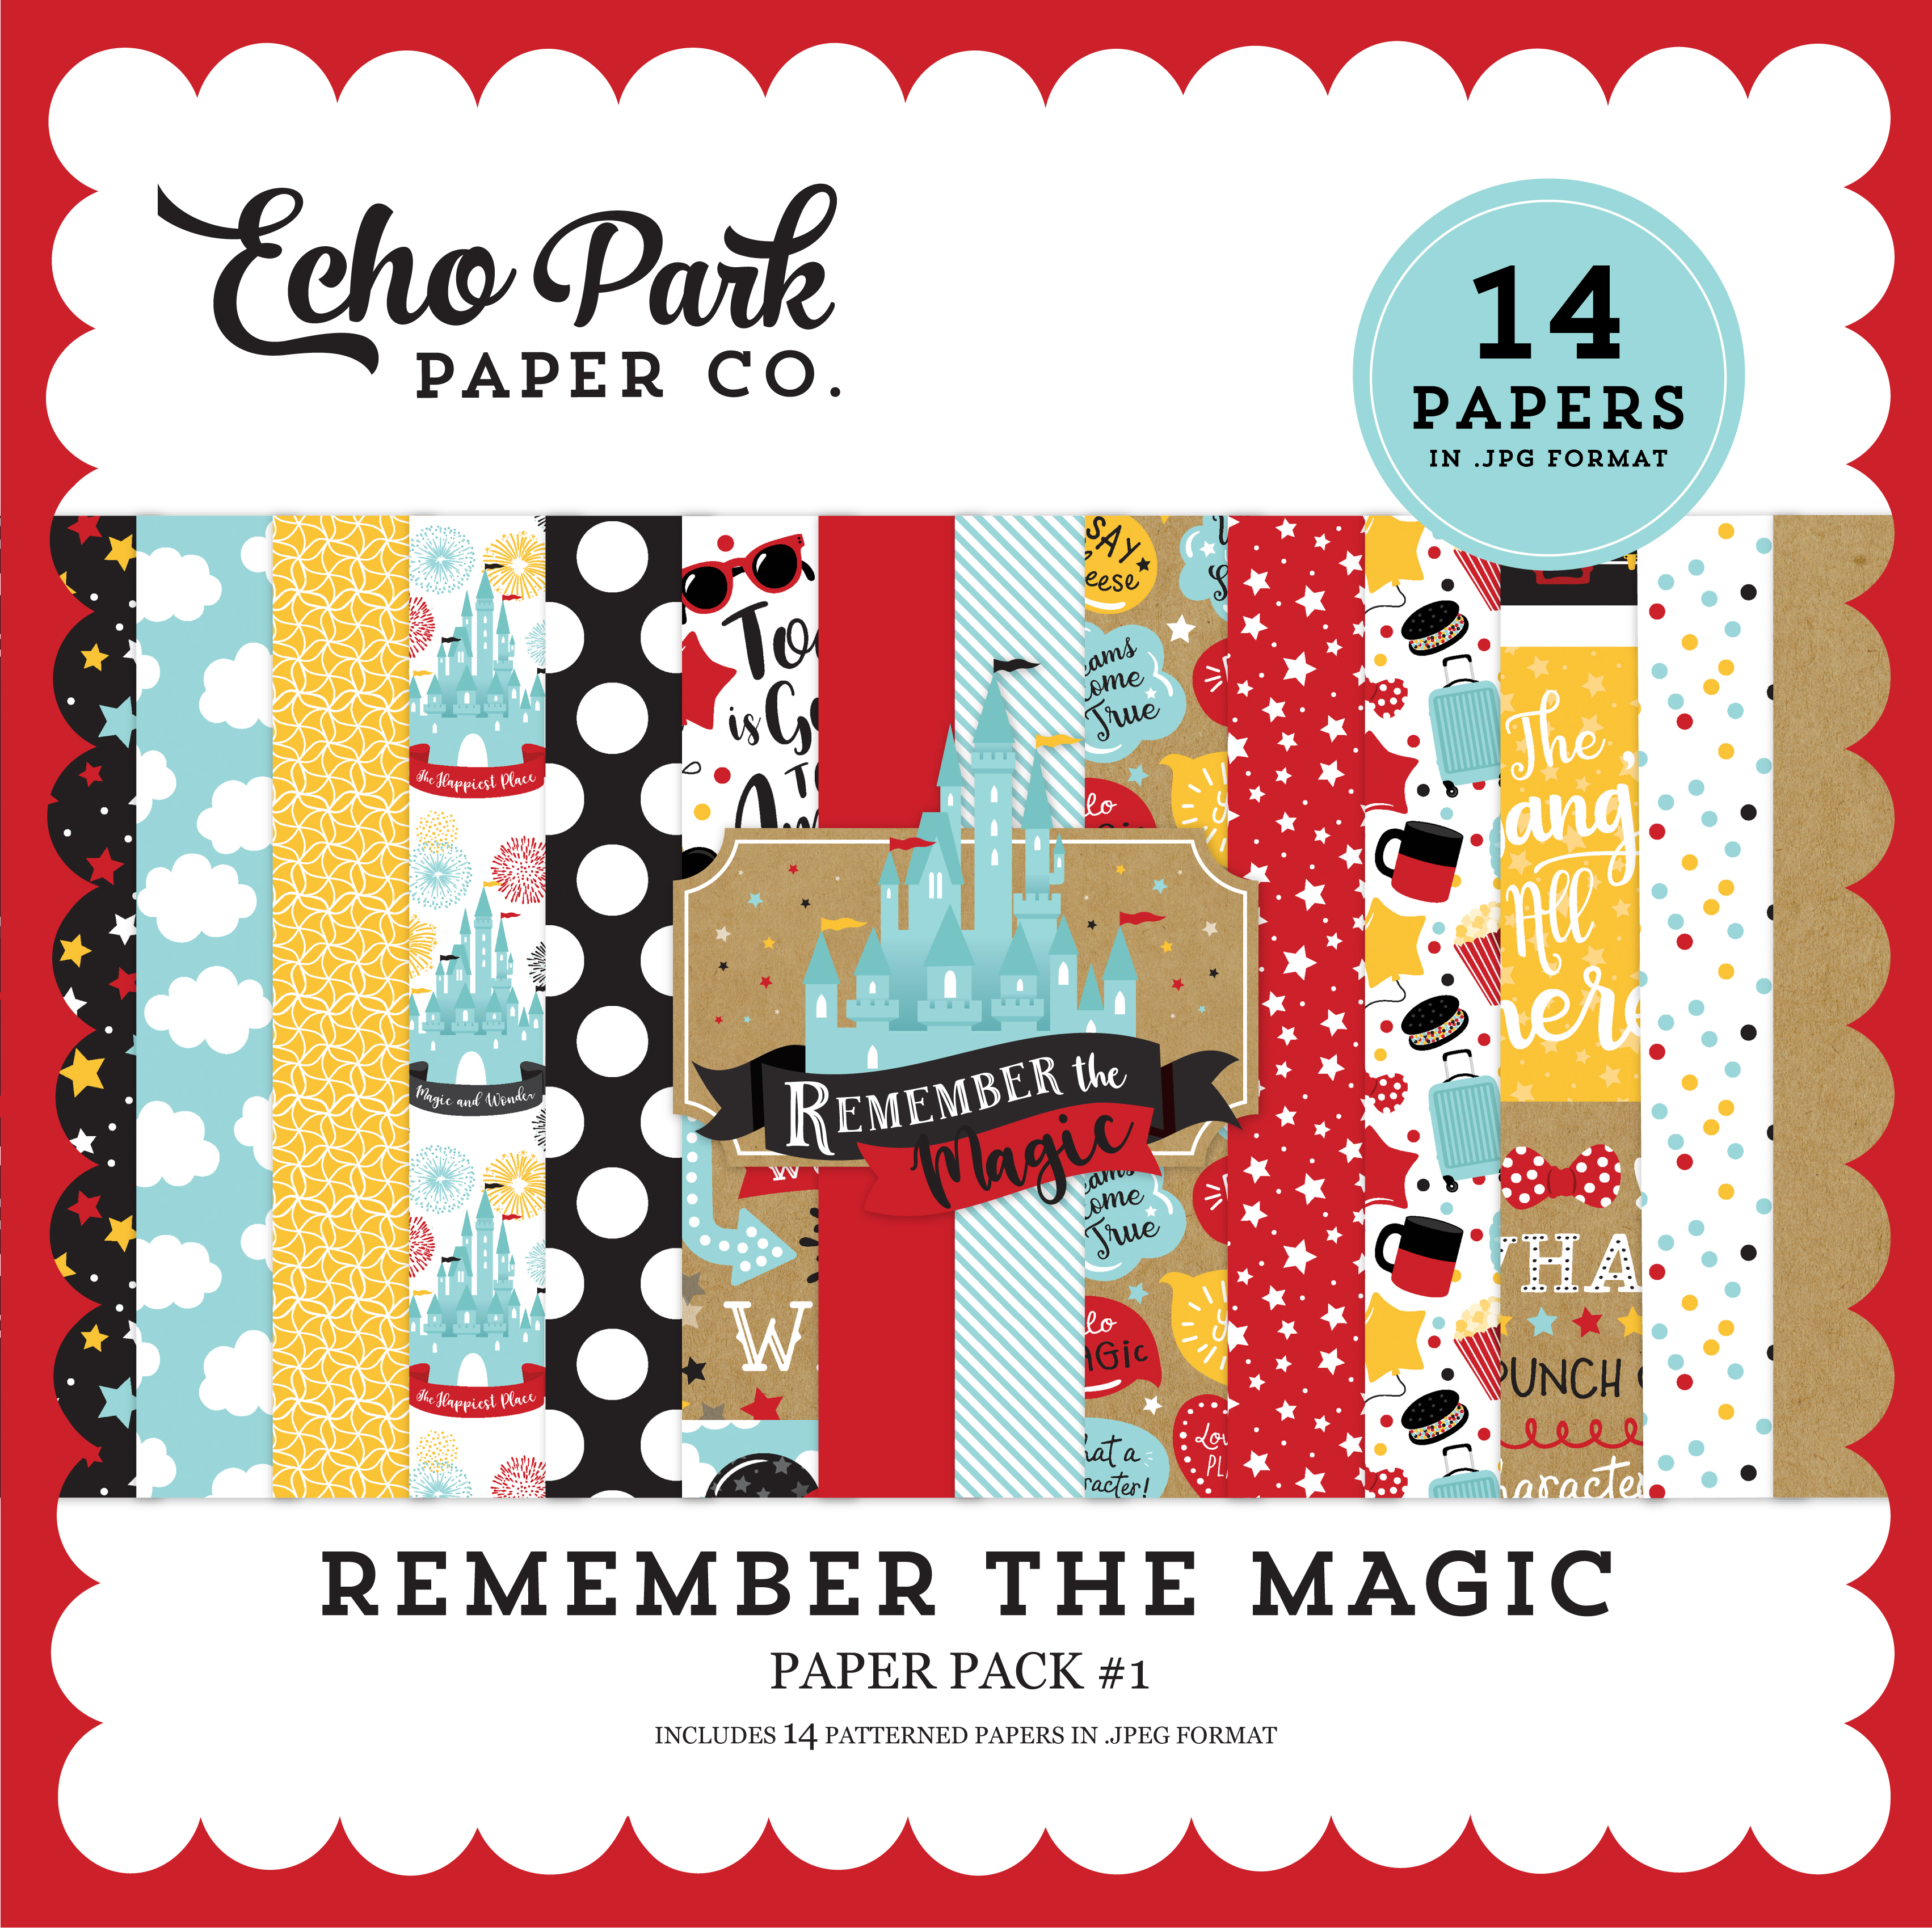 Remember the Magic Paper Pack #1